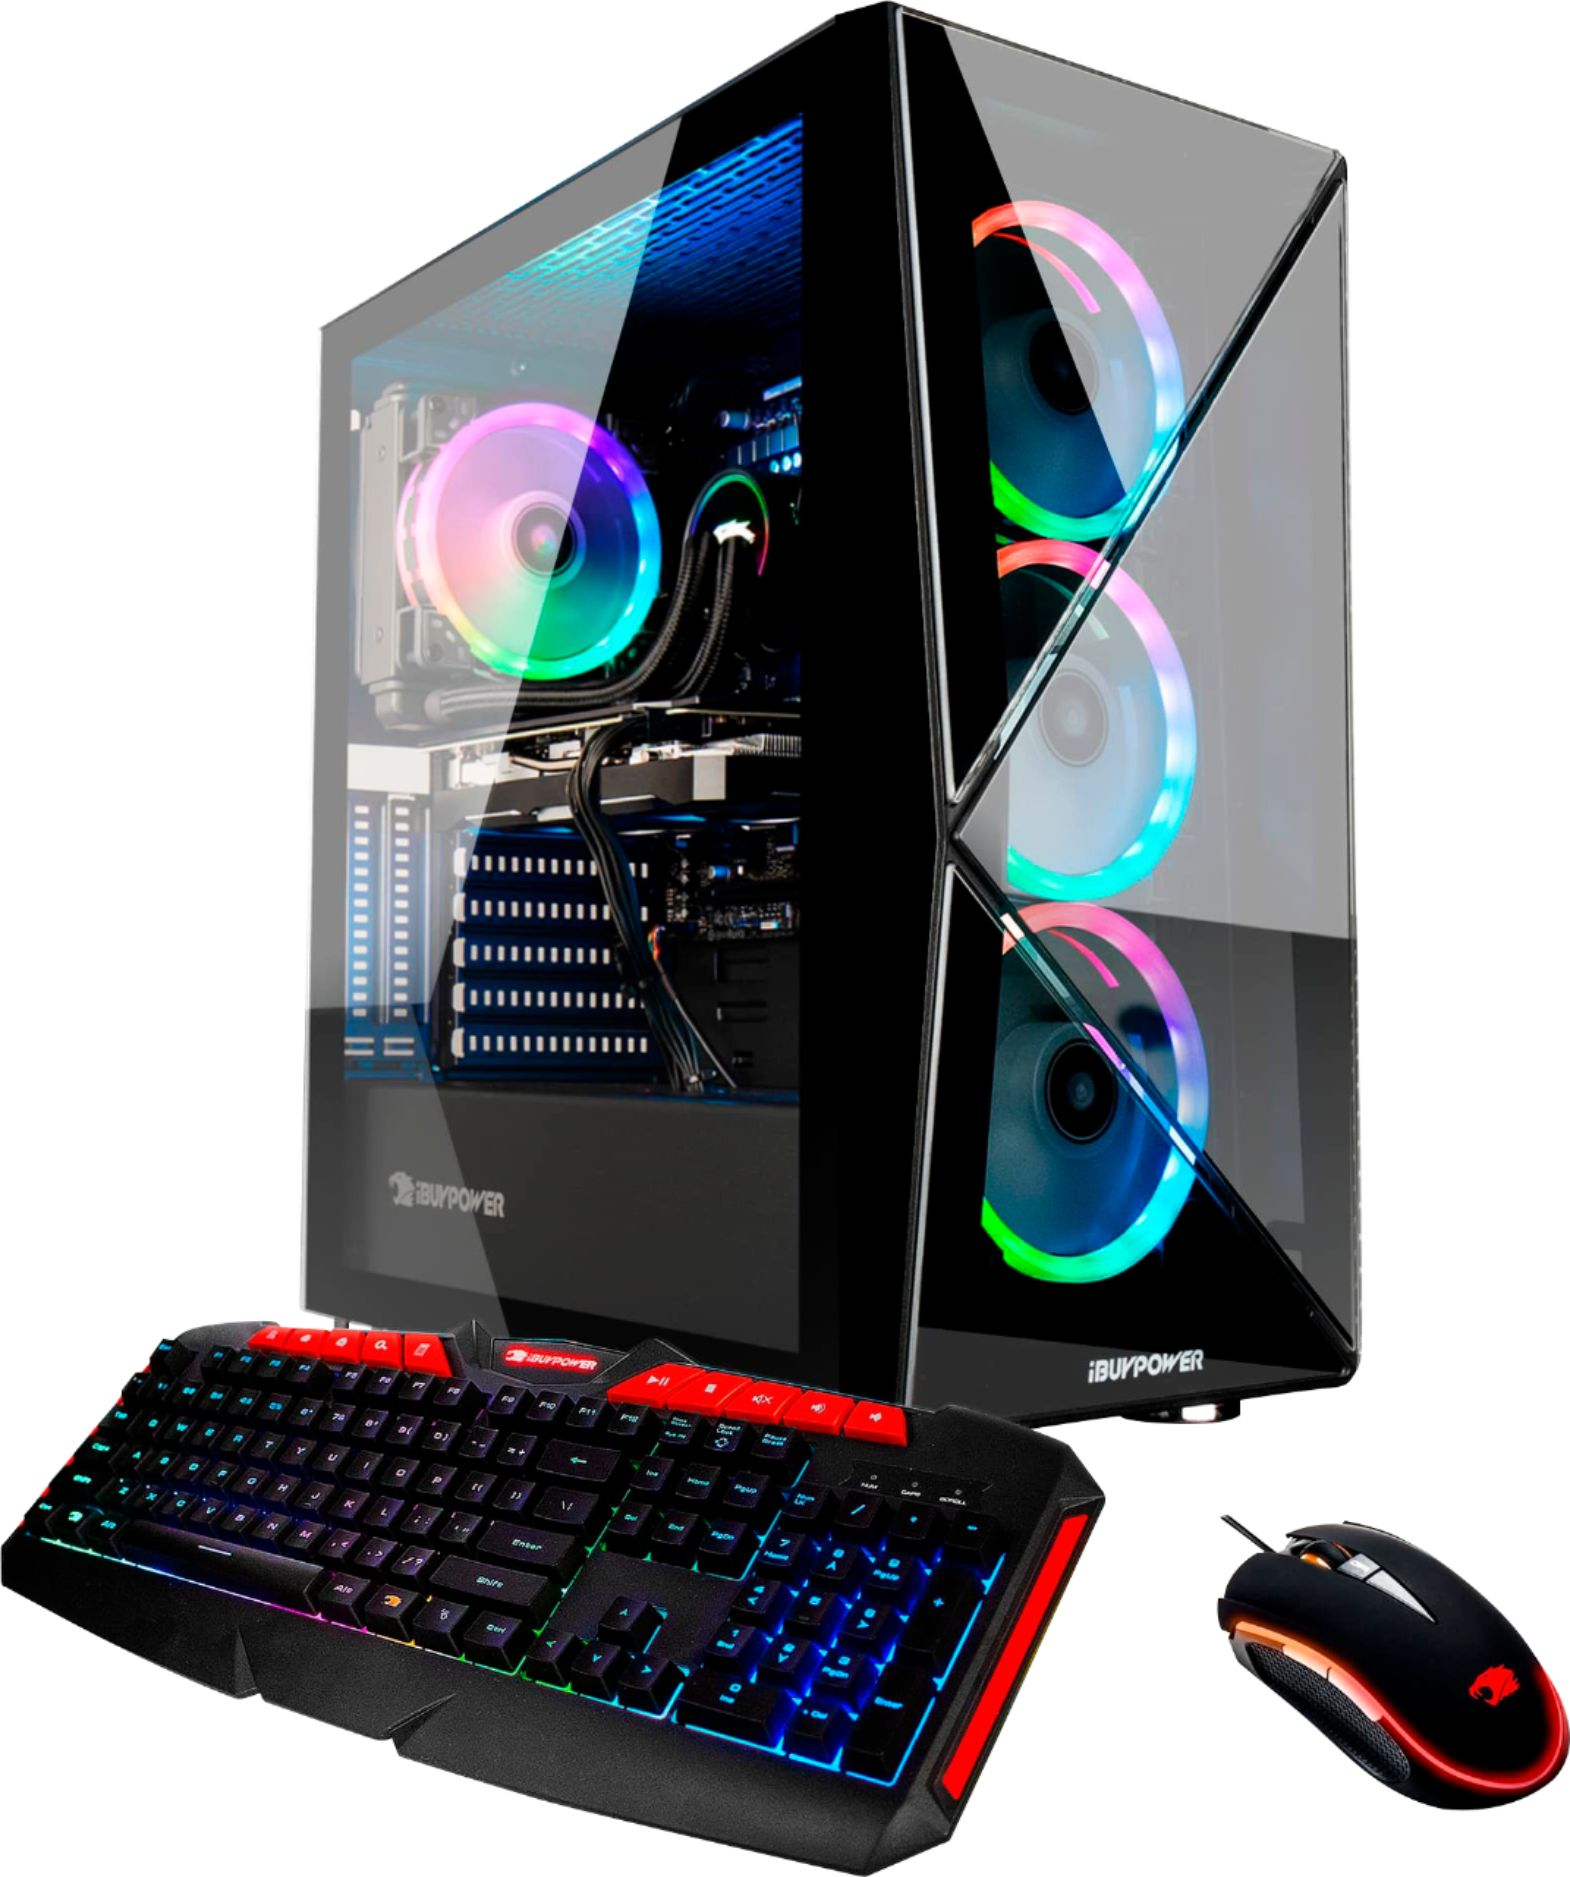 Front Zoom. iBUYPOWER - Gaming Desktop - Intel Core i7-9700K - 16GB Memory - NVIDIA GeForce RTX 2080 SUPER - 1TB HDD + 480GB SSD - Black.